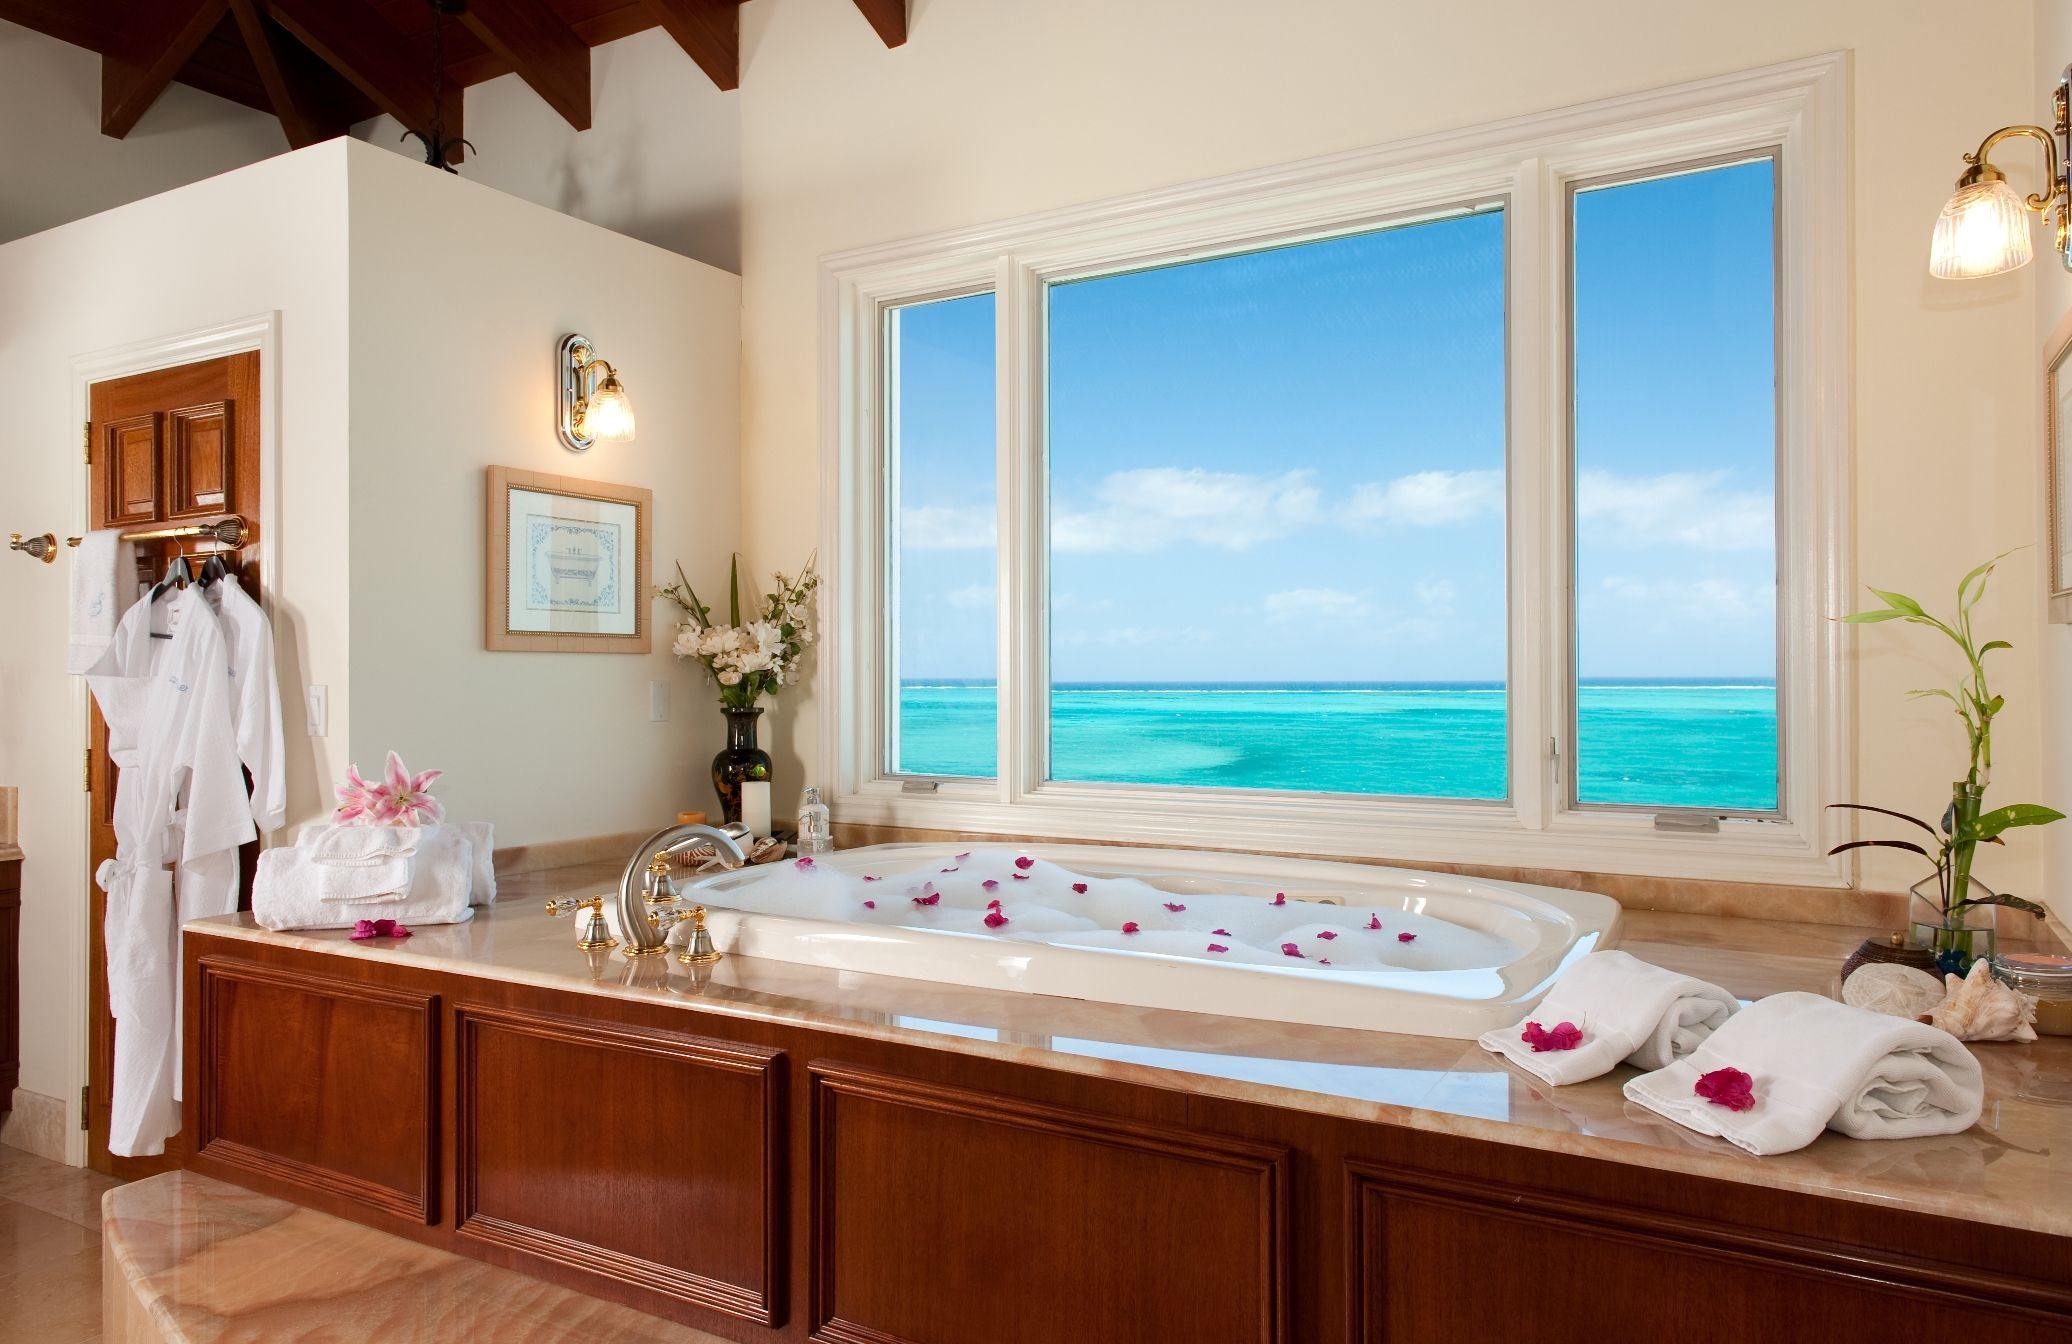 STARGAZER | Blue Mountain, Providenciales, Turks and Caicos Islands | Luxury Portfolio International Member - Grace Bay Realty